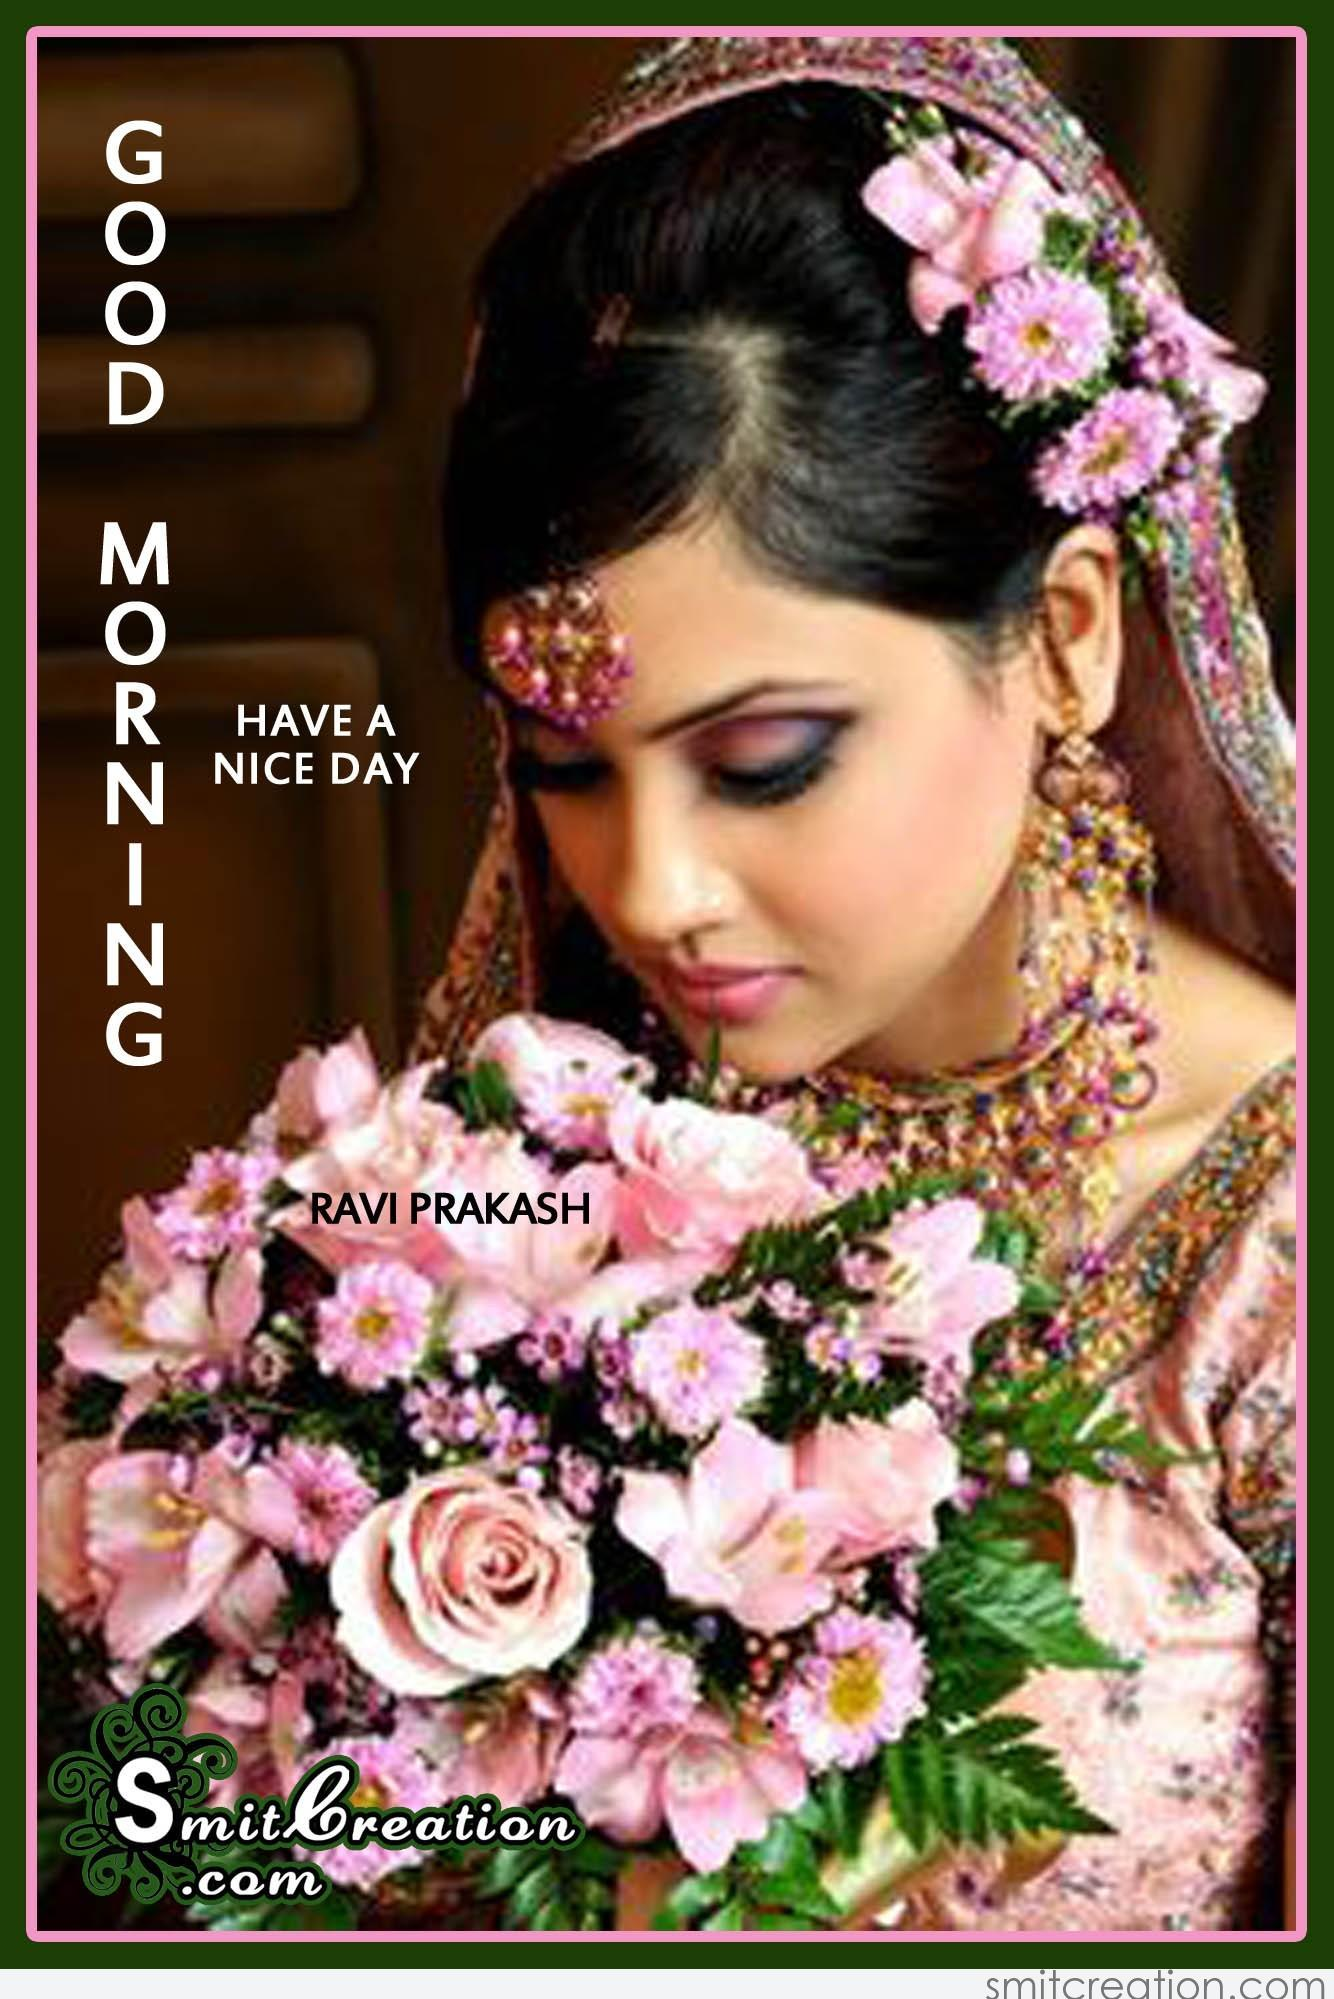 Good Morning Flowers Pictures and Graphics - SmitCreation